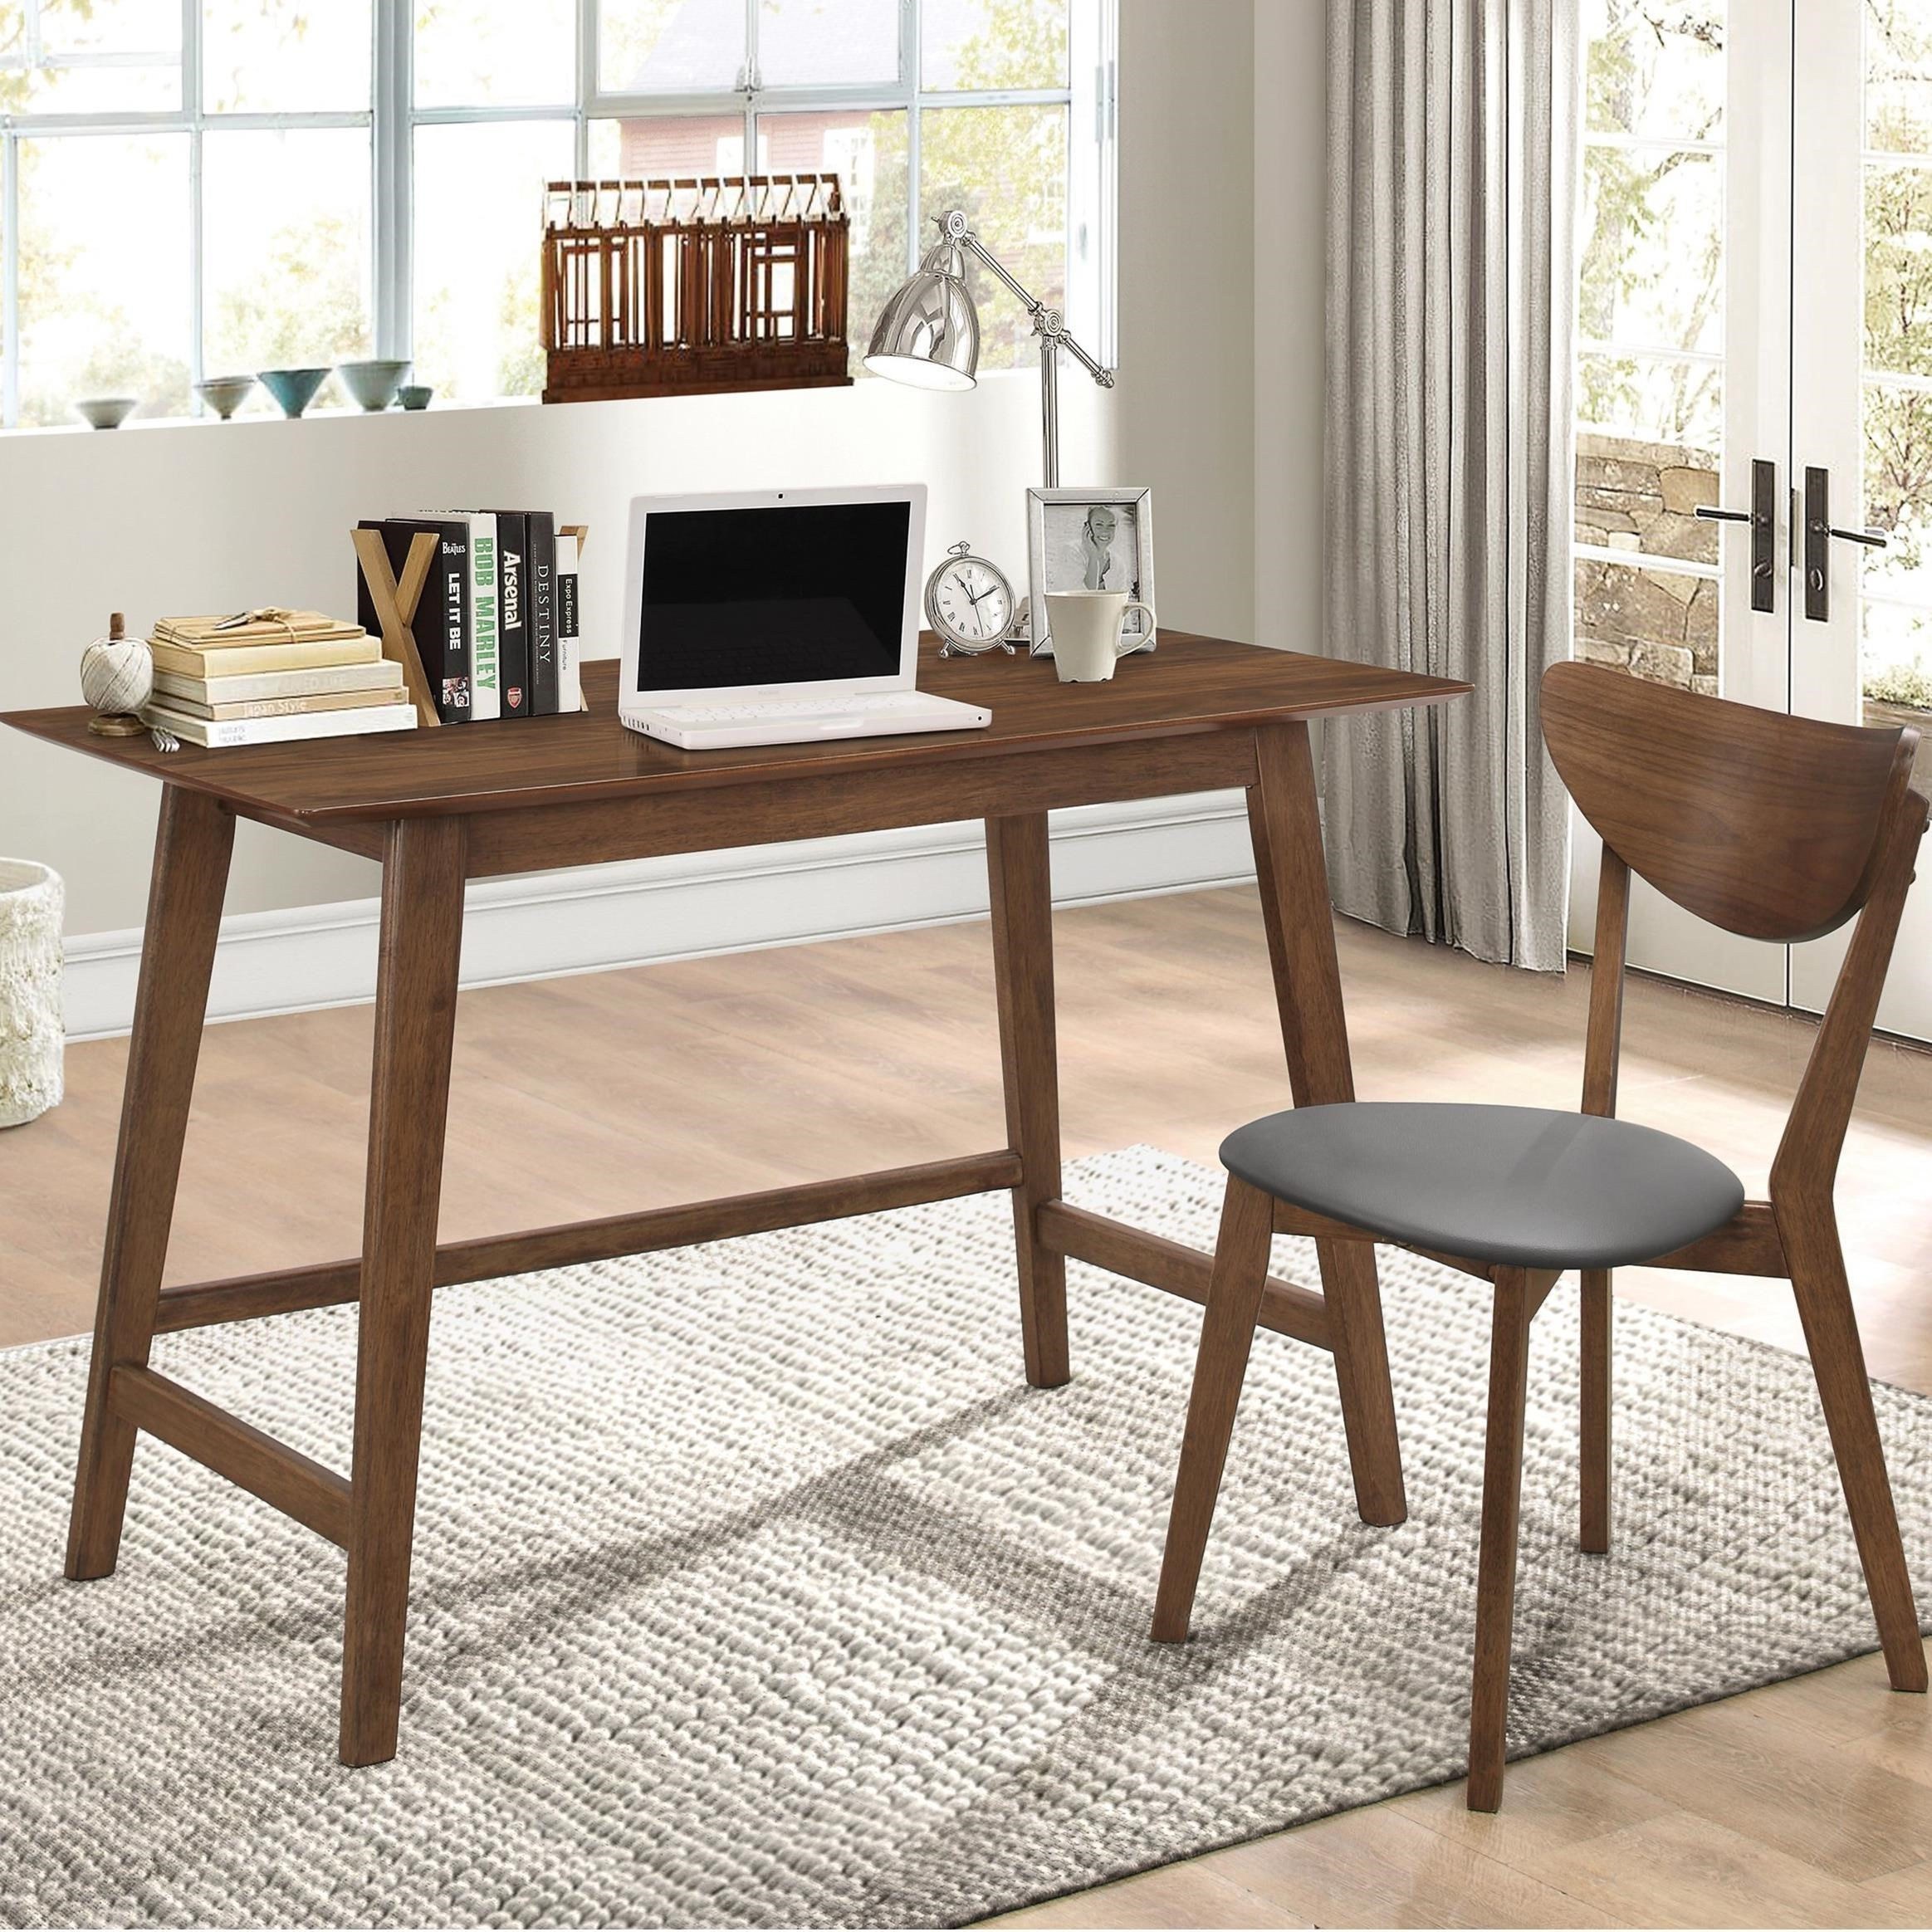 Coaster Mid Century Desk And Chair Set